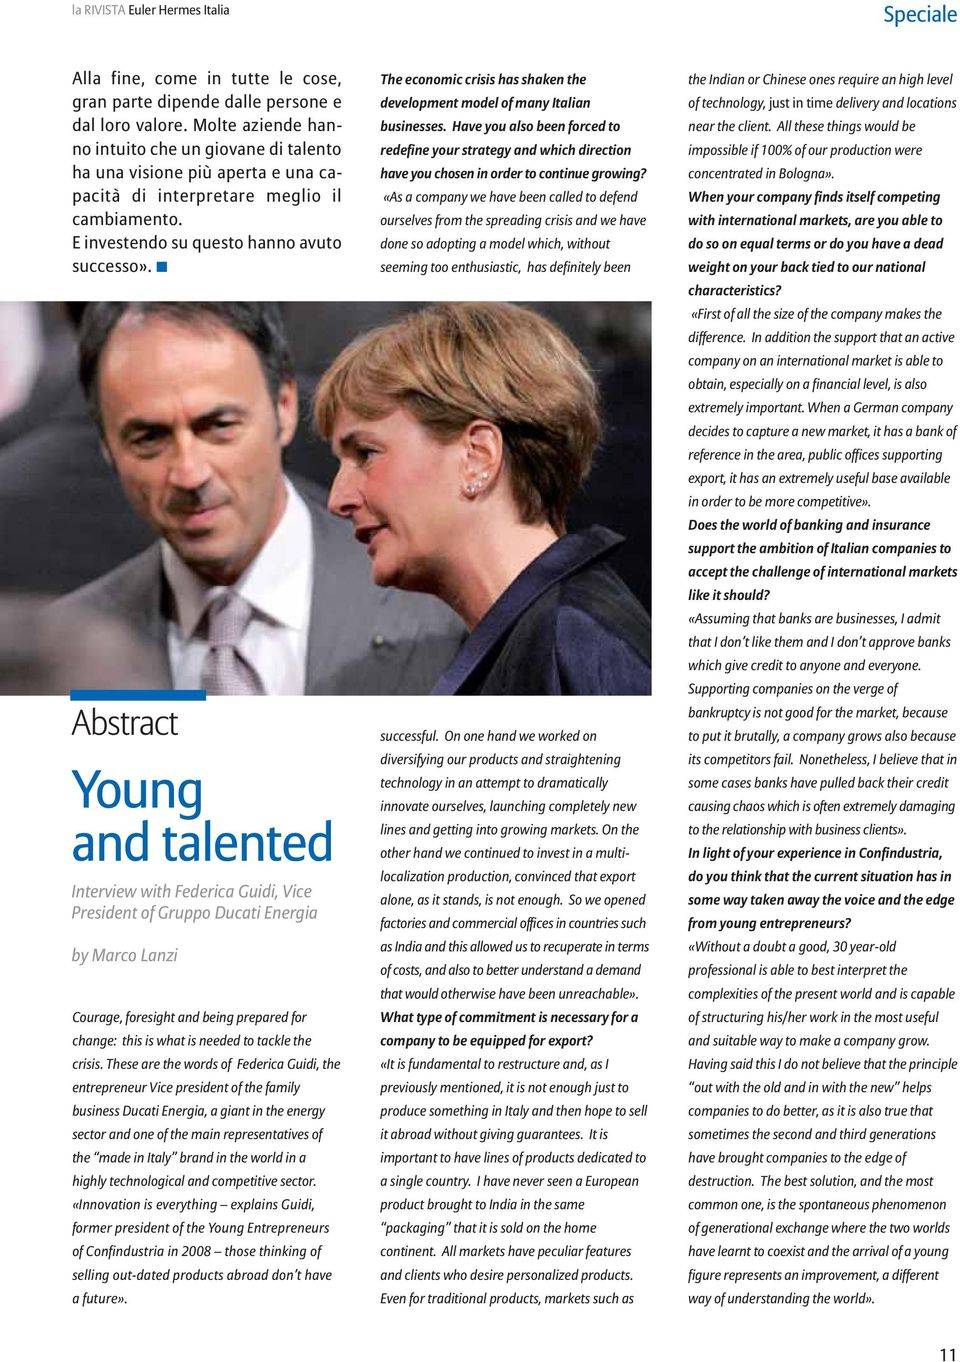 Abstract Young and talented Interview with Federica Guidi, Vice President of Gruppo Ducati Energia by Marco Lanzi Courage, foresight and being prepared for change: this is what is needed to tackle